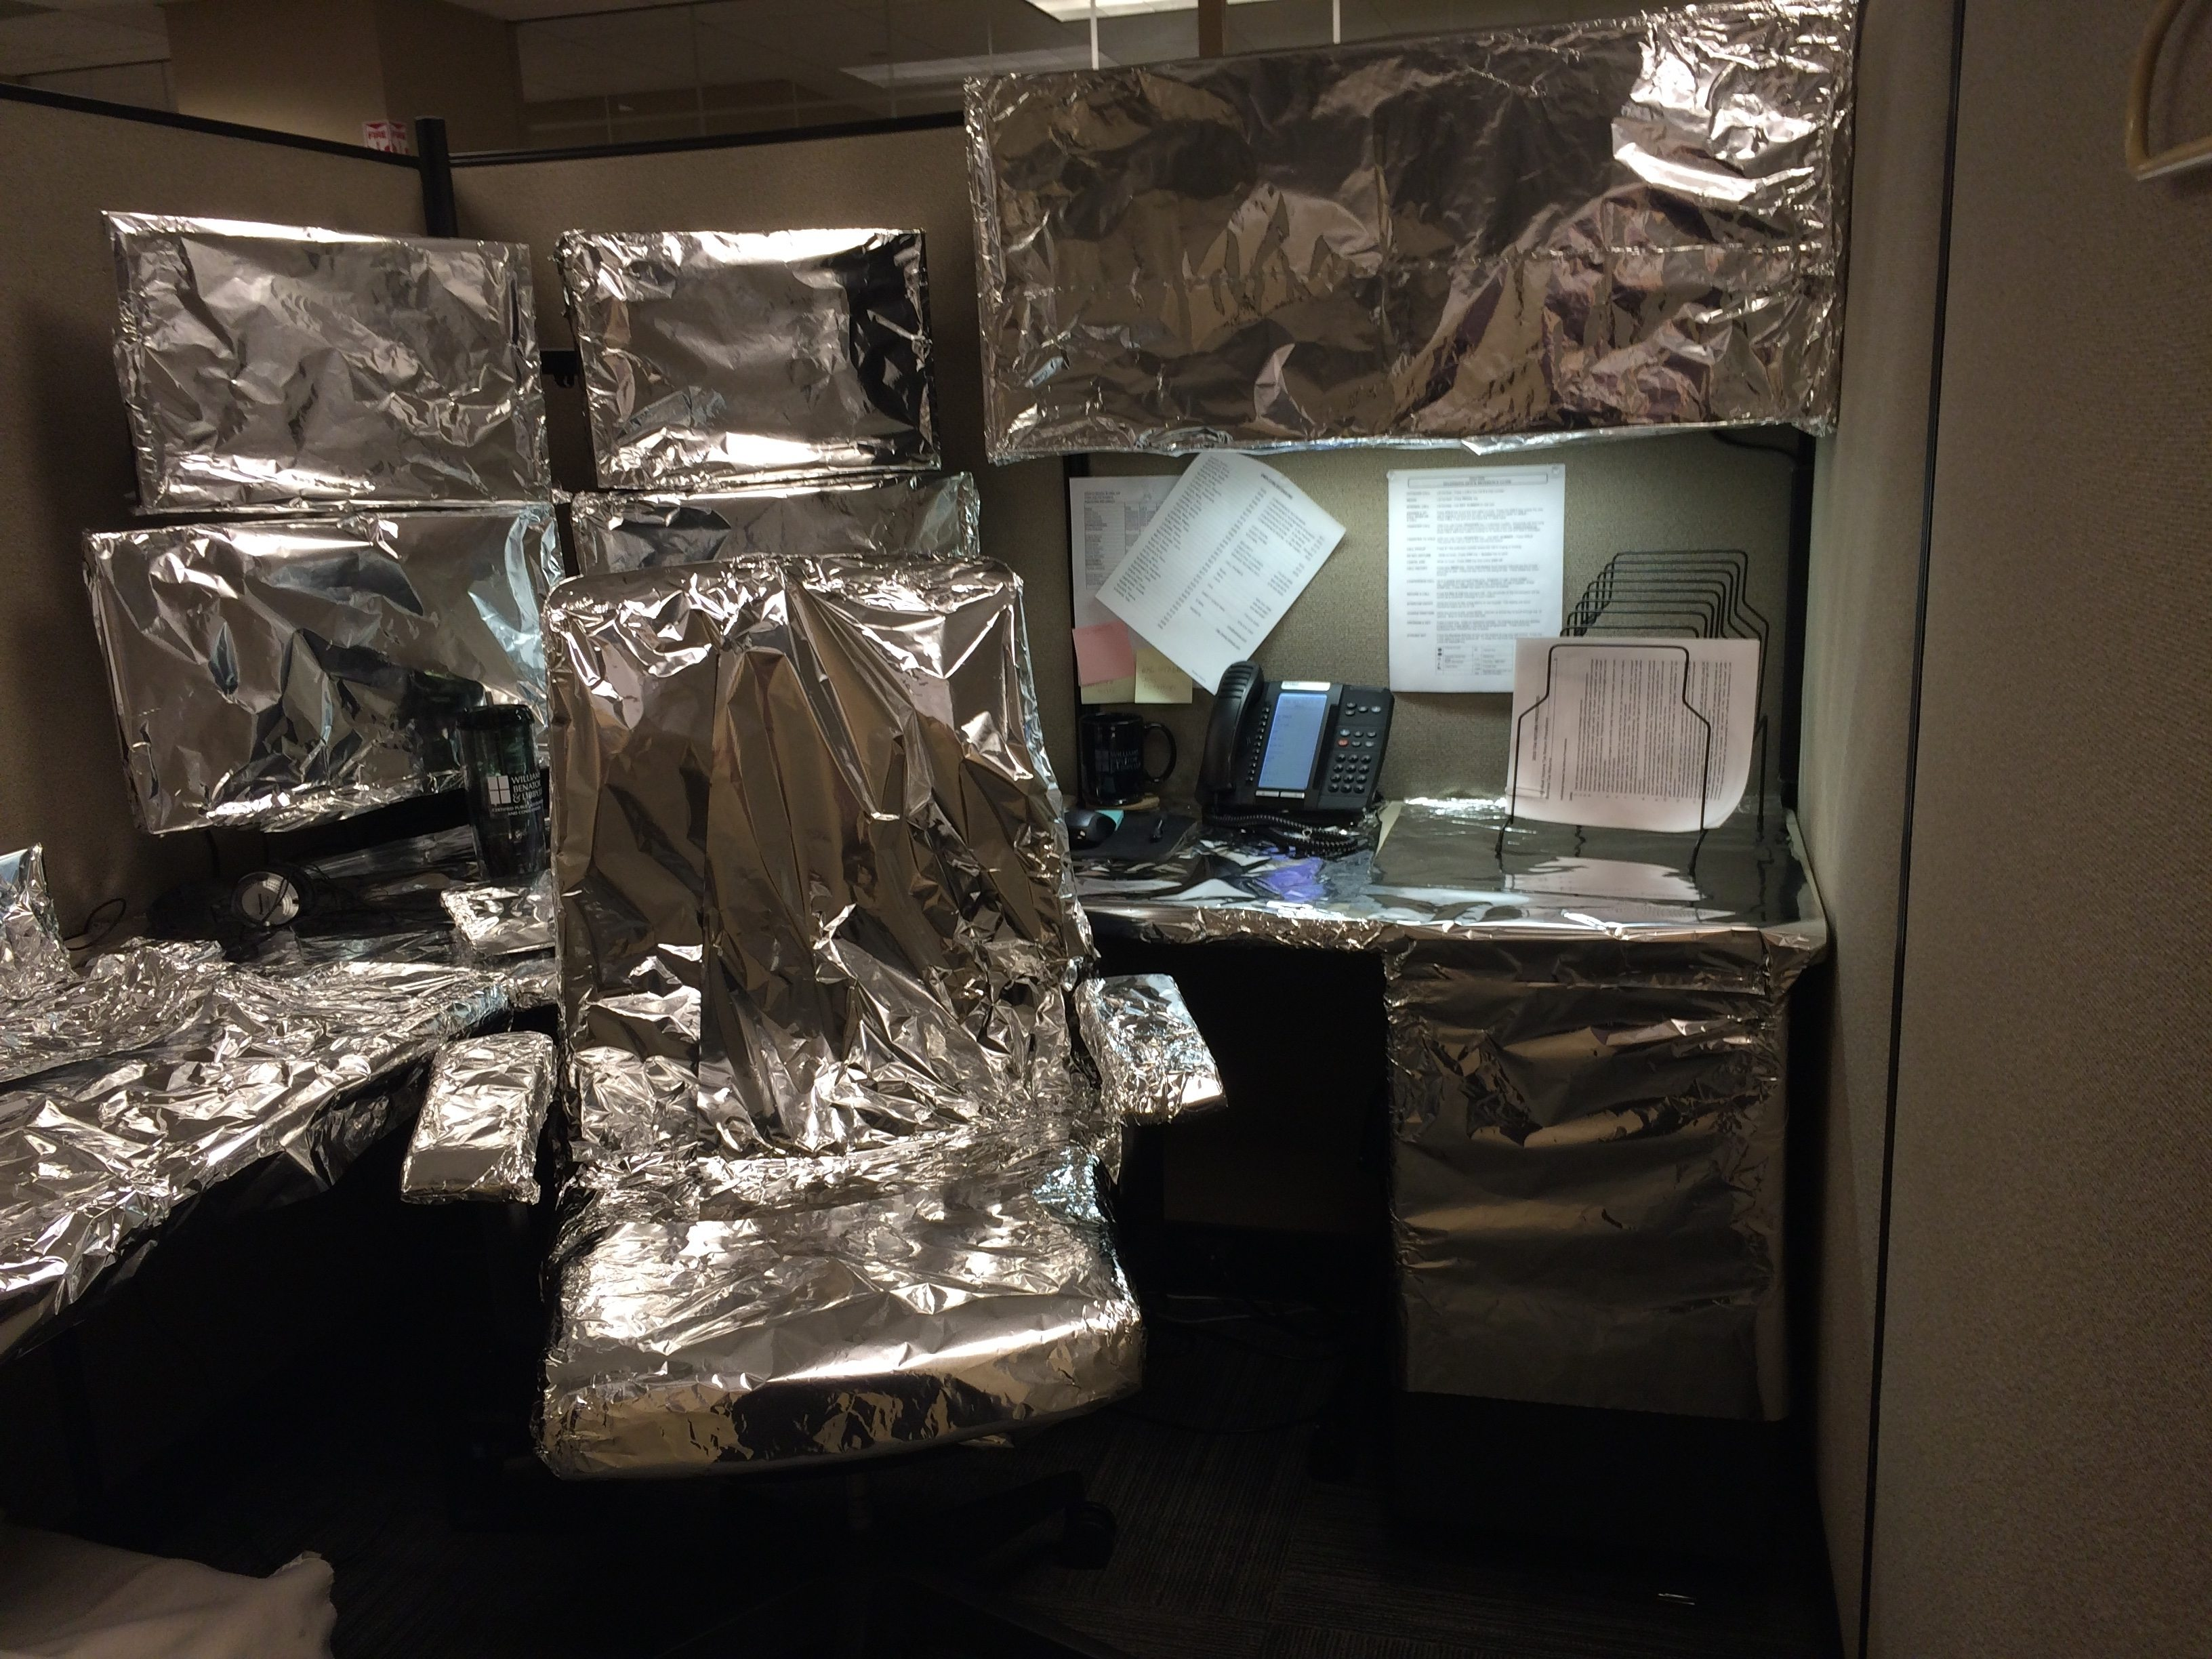 Watch out on April Fools Day. You might find your work station like this!